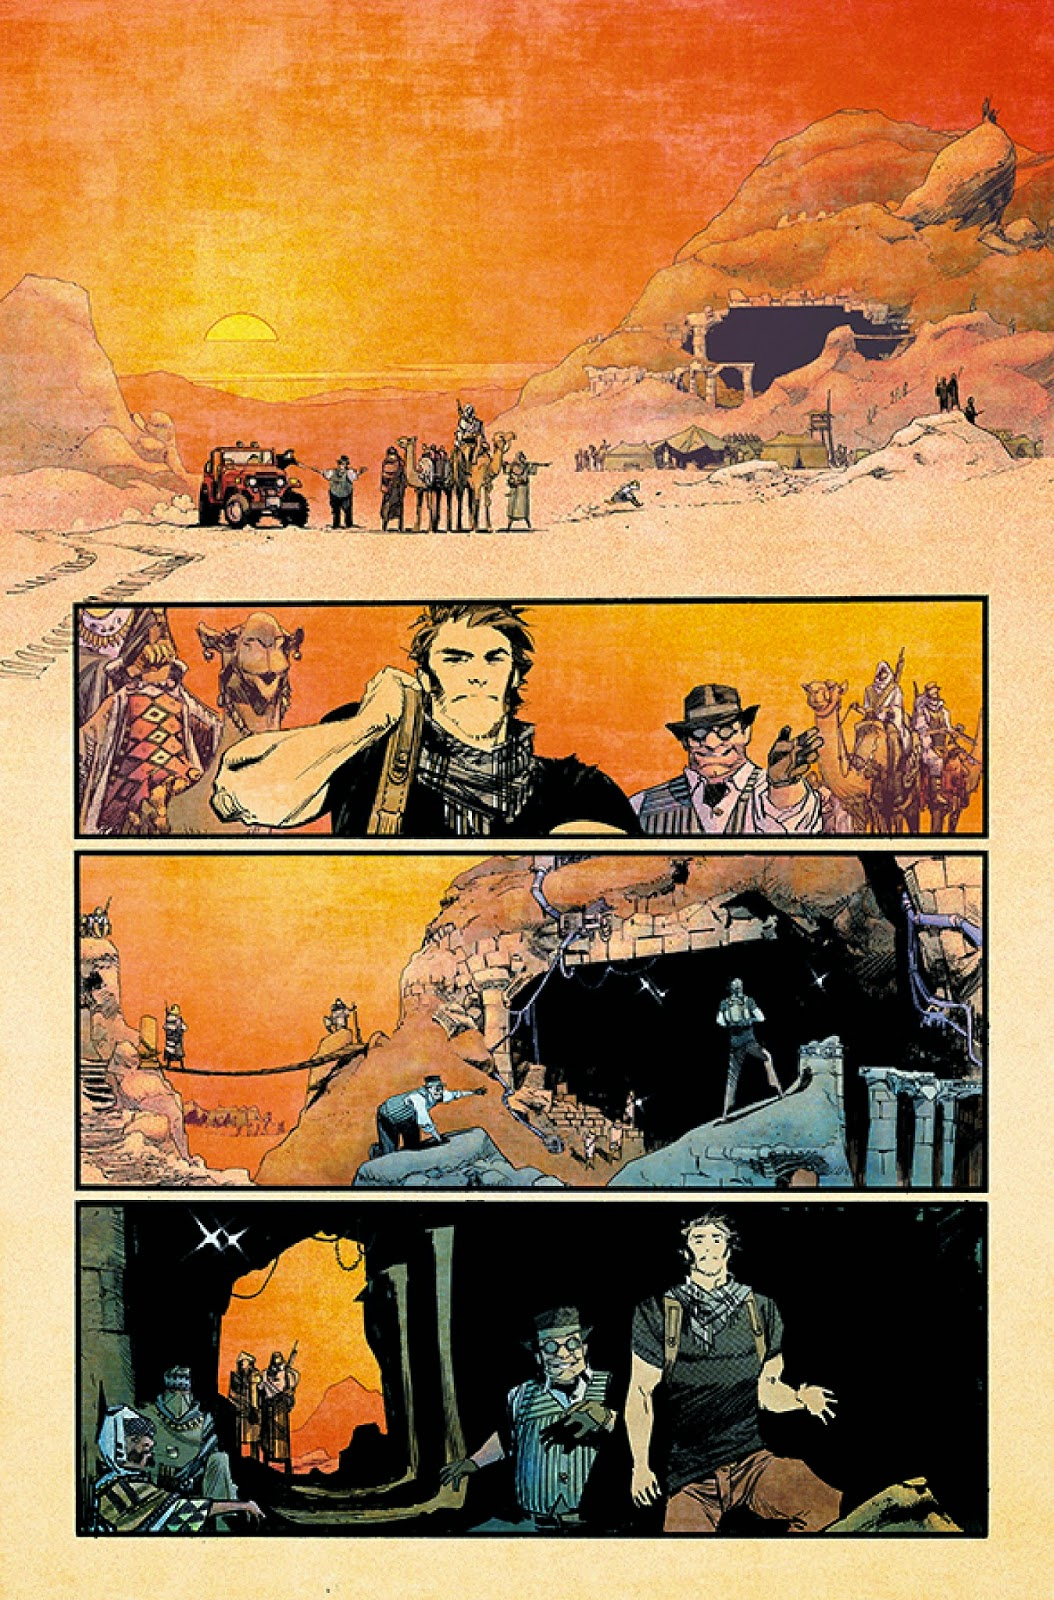 Indiana Jones meets time travel in Chrononauts